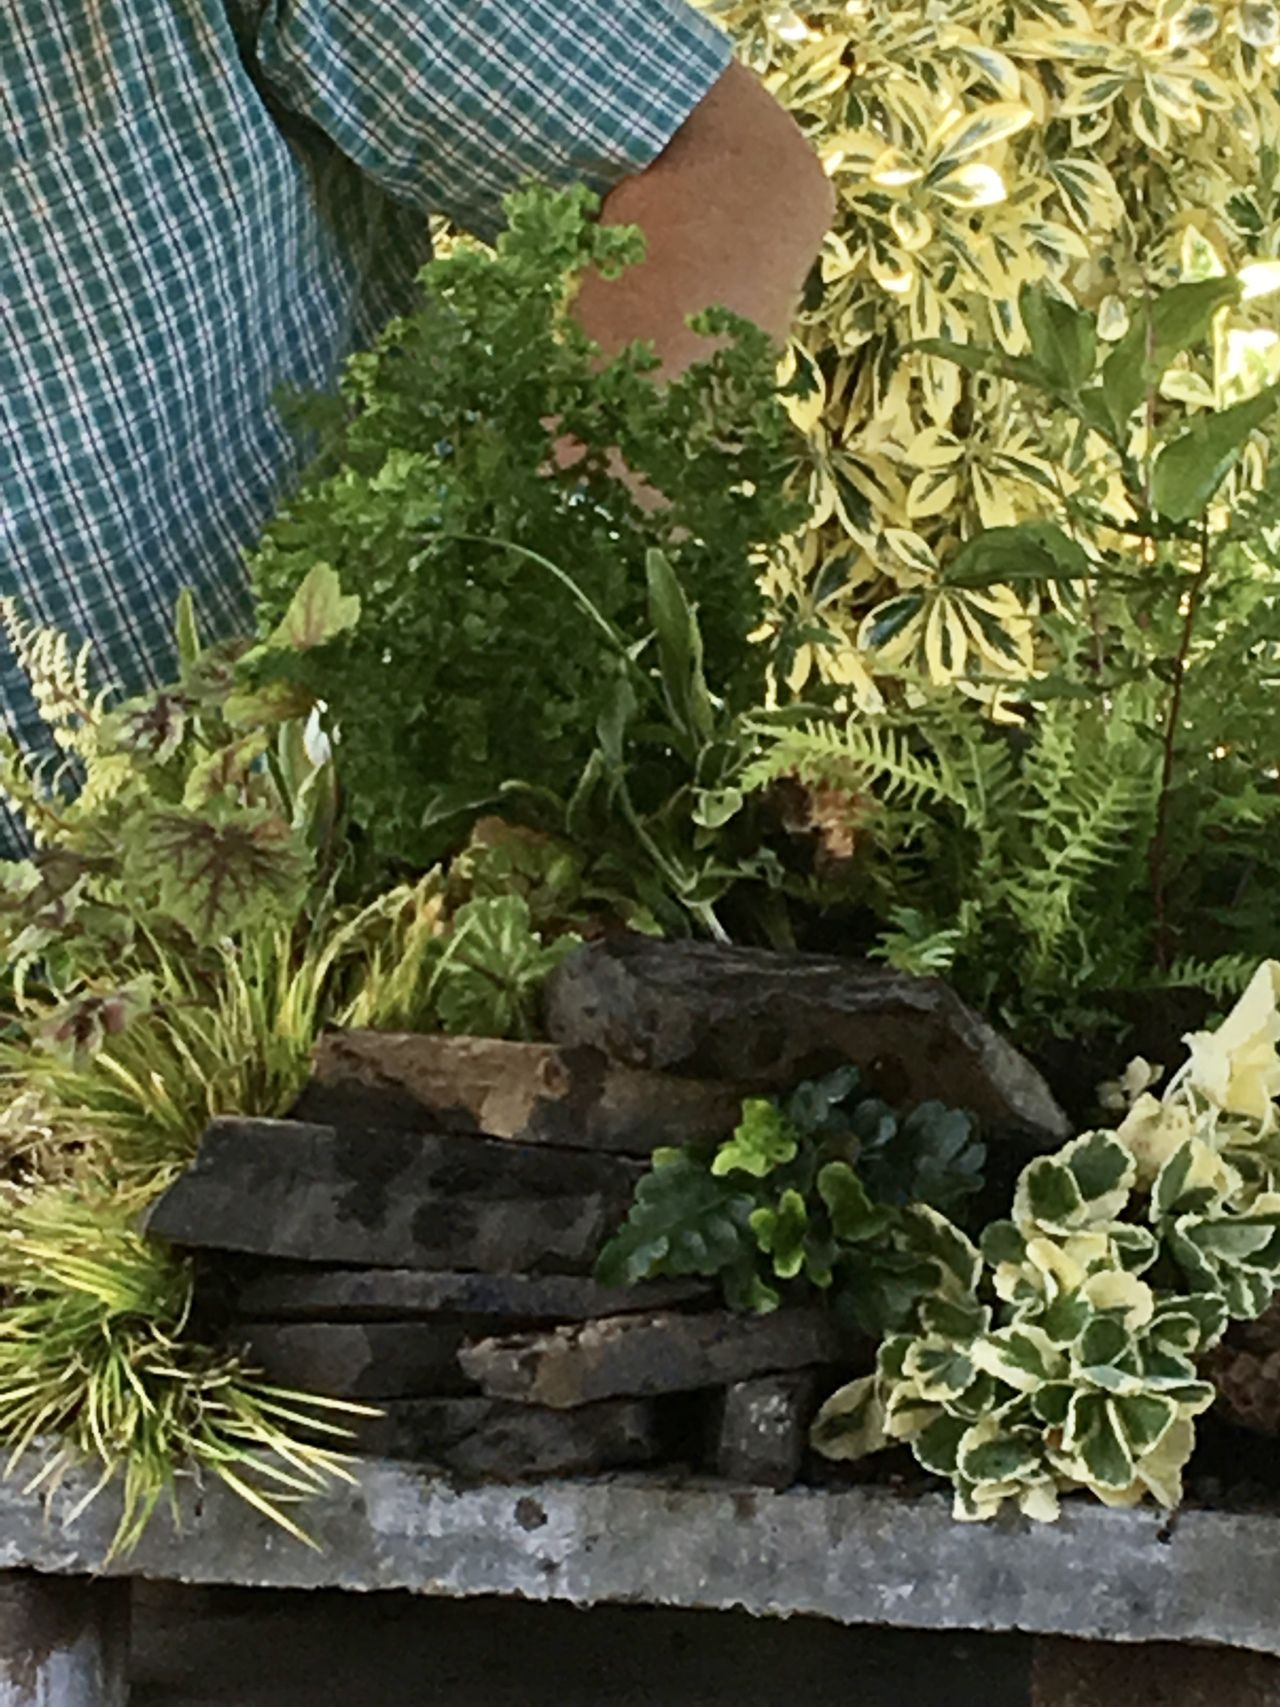 How to build a fern table Ferns, Building, Plants